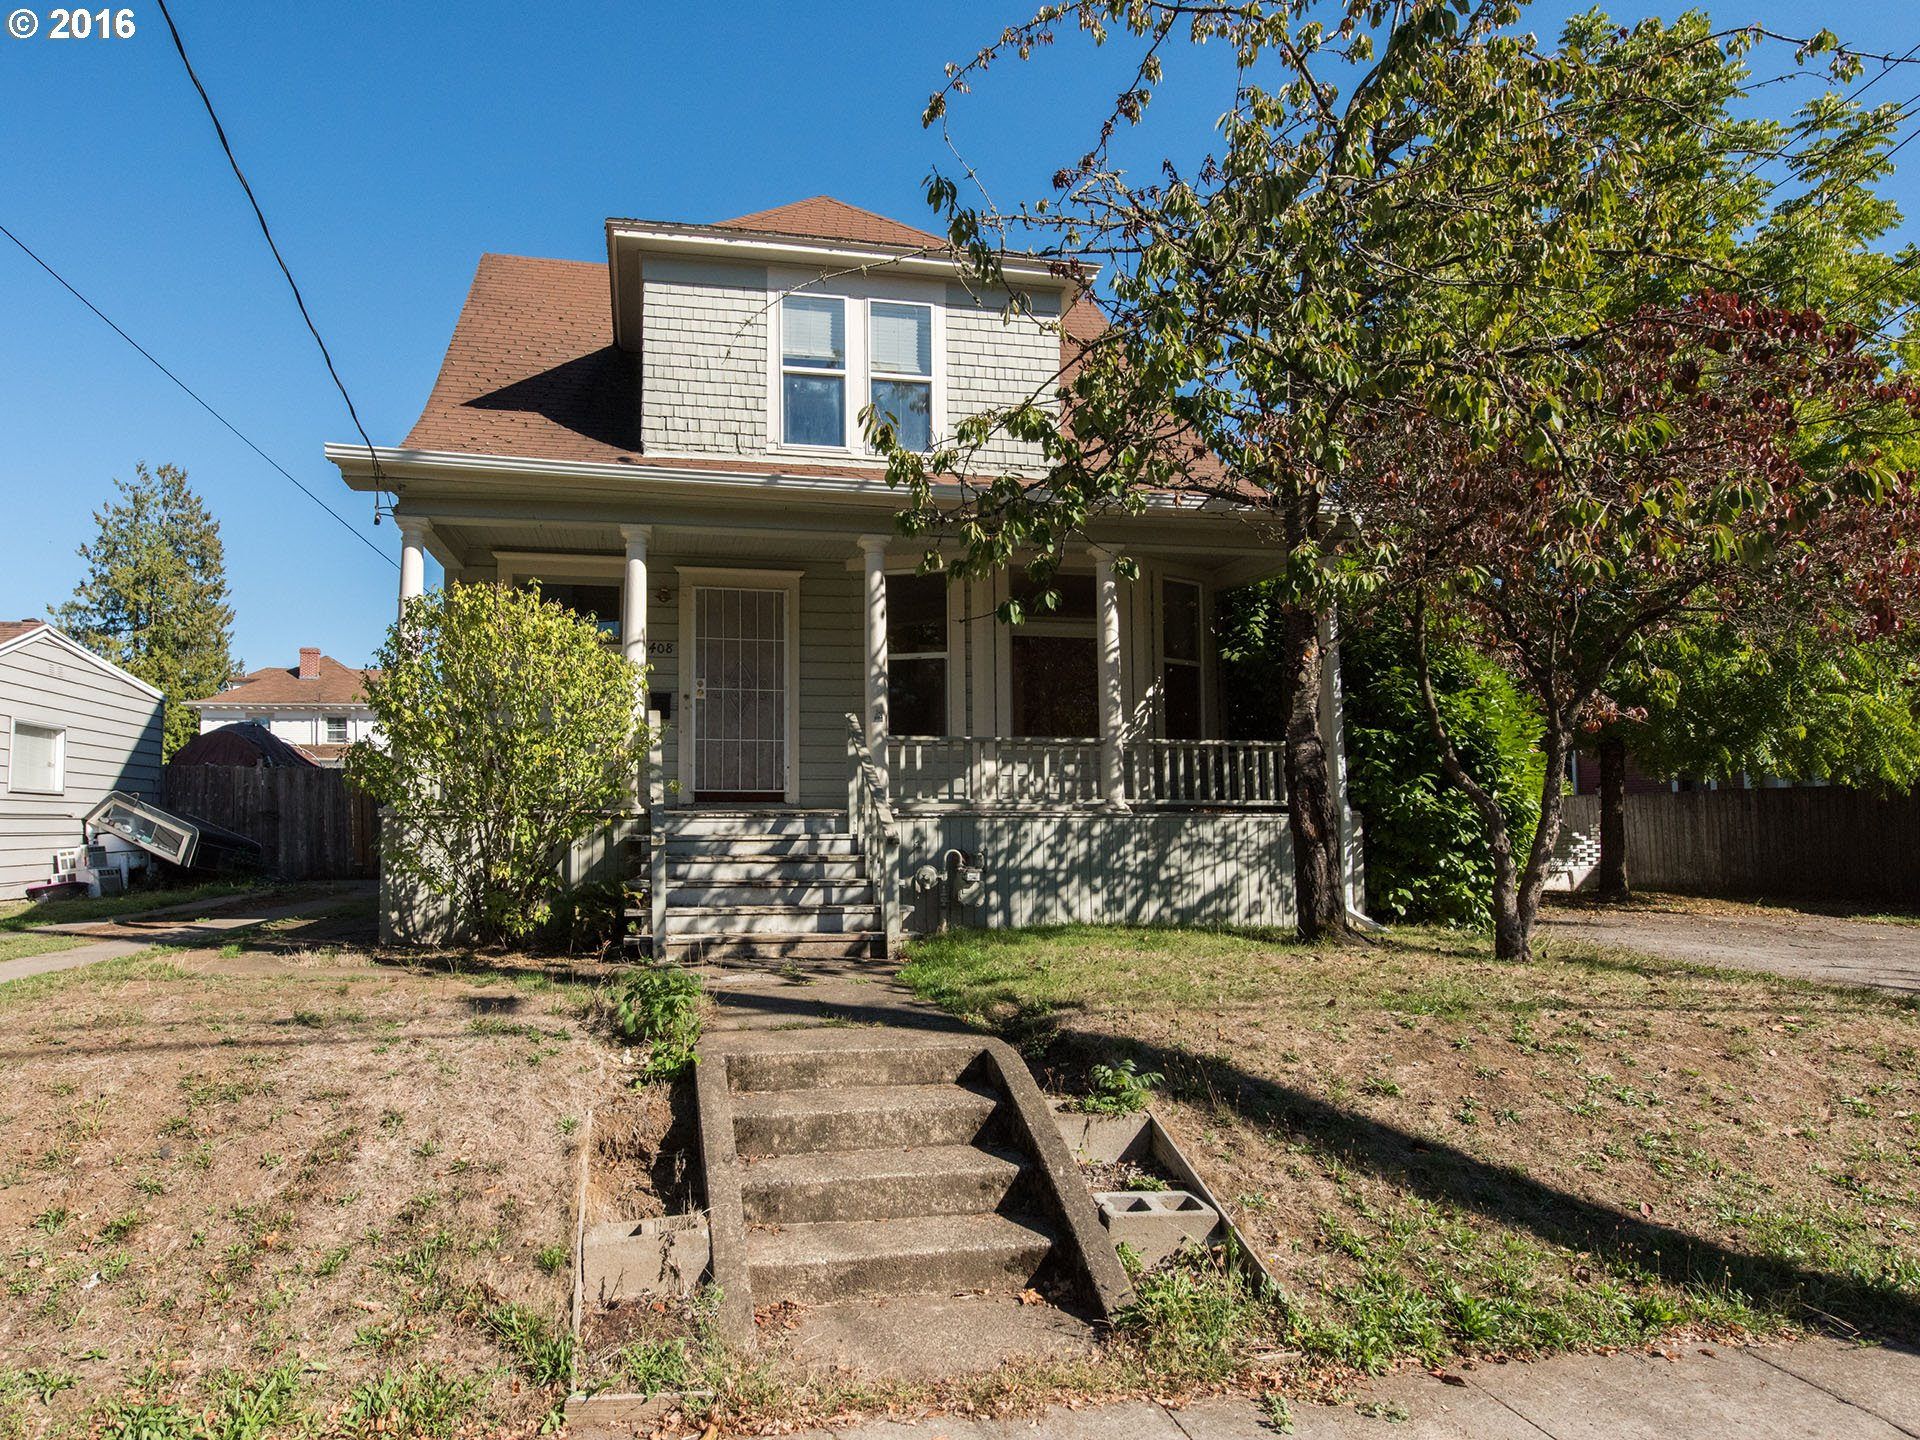 2242 sq. ft 3 bedrooms 2 bathrooms  House For Sale,Portland, OR